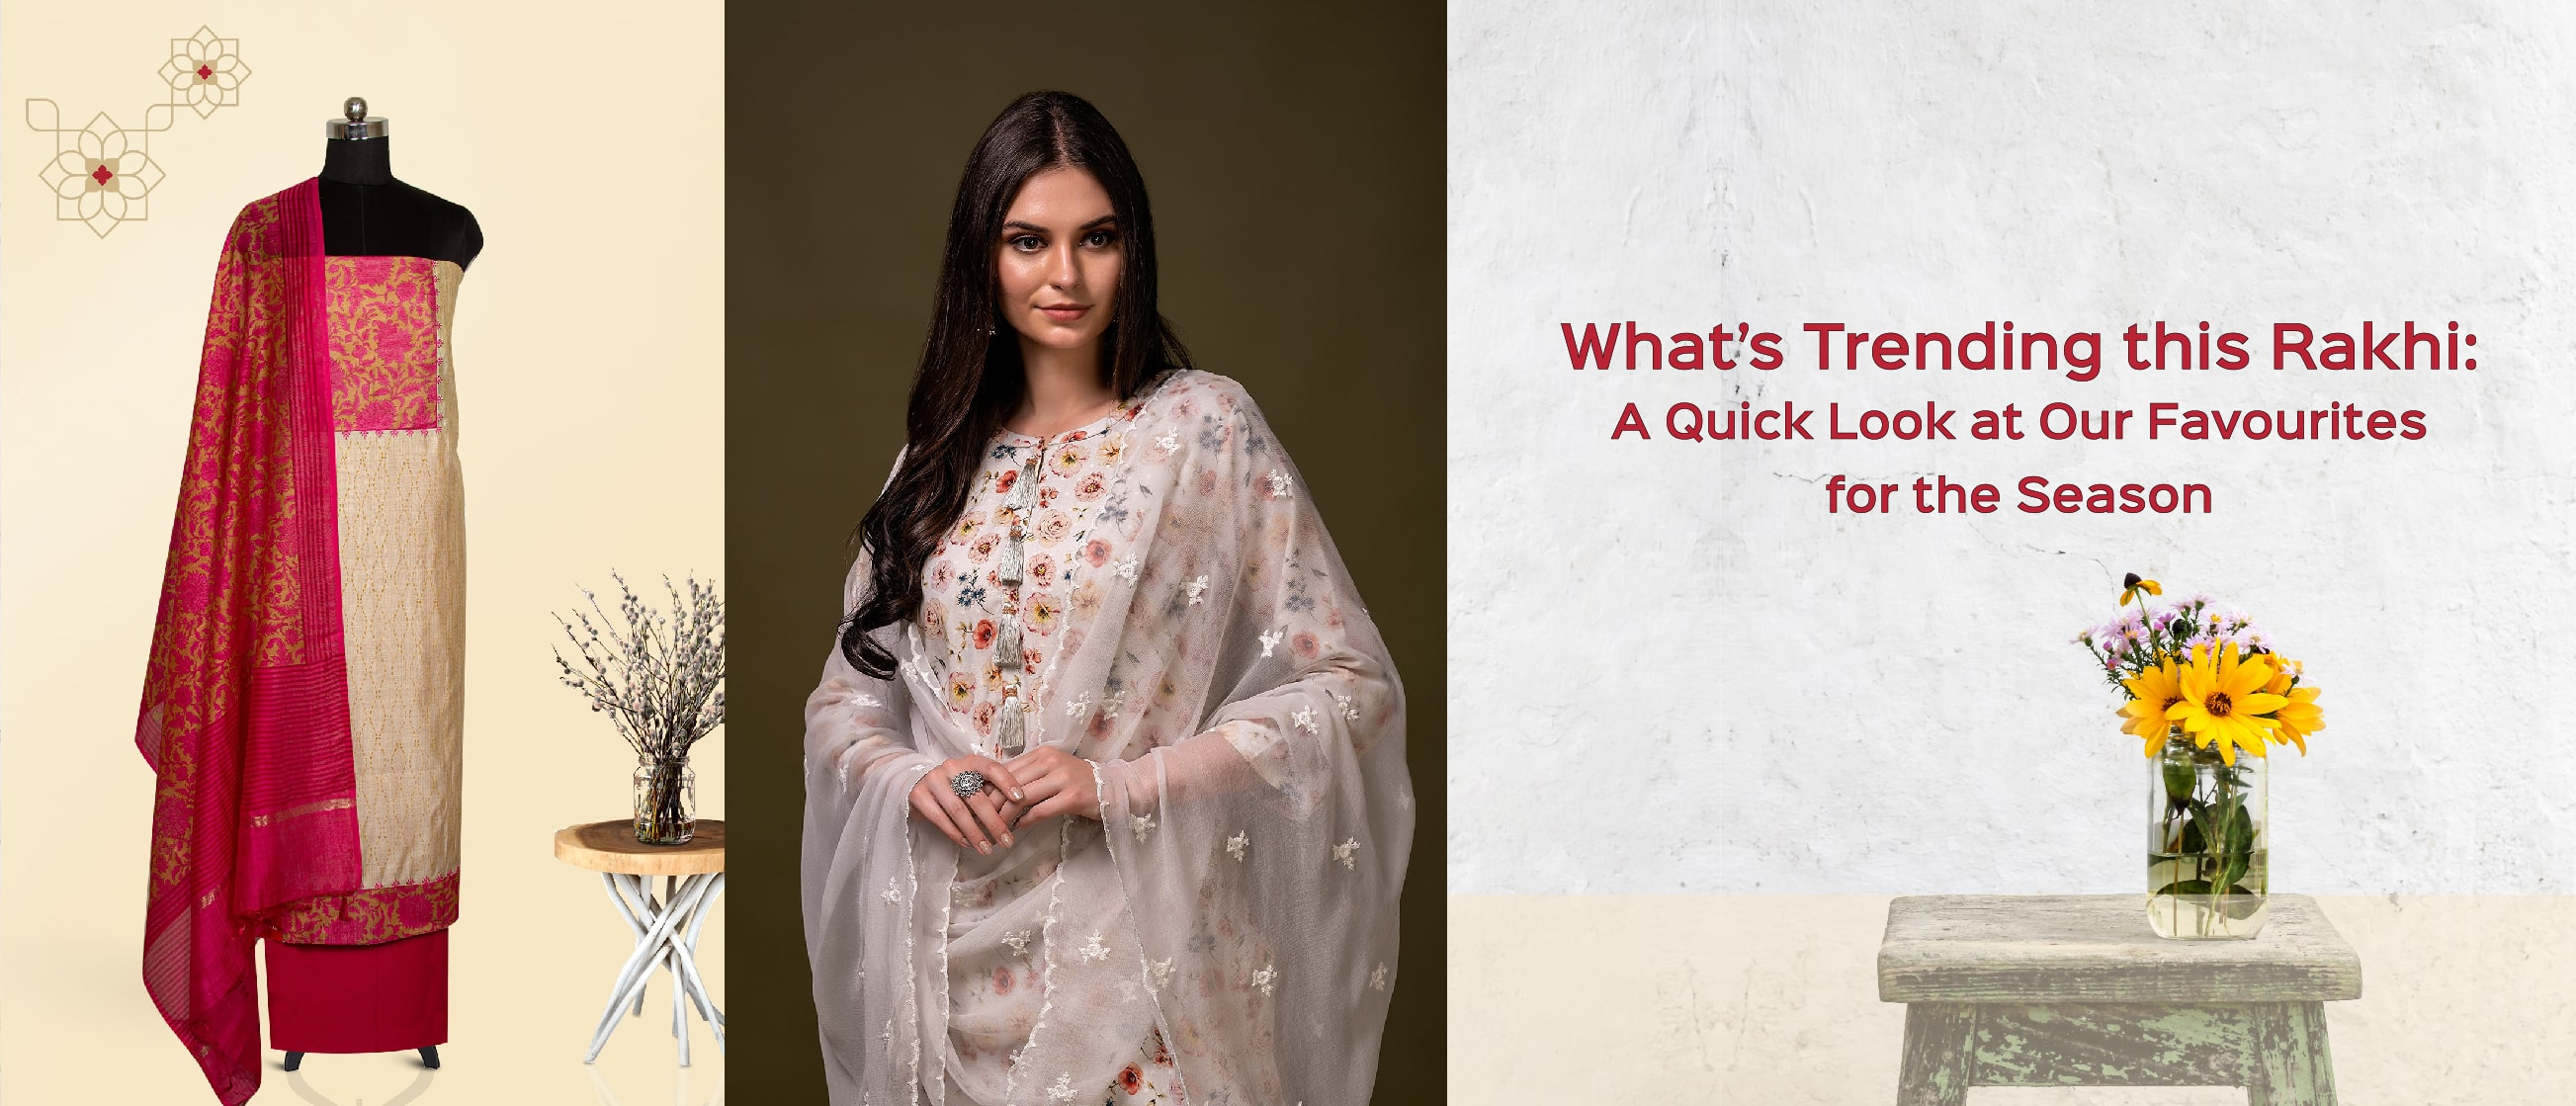 What's Trending this Rakhi: A Quick Look at Our Favourites for the Season